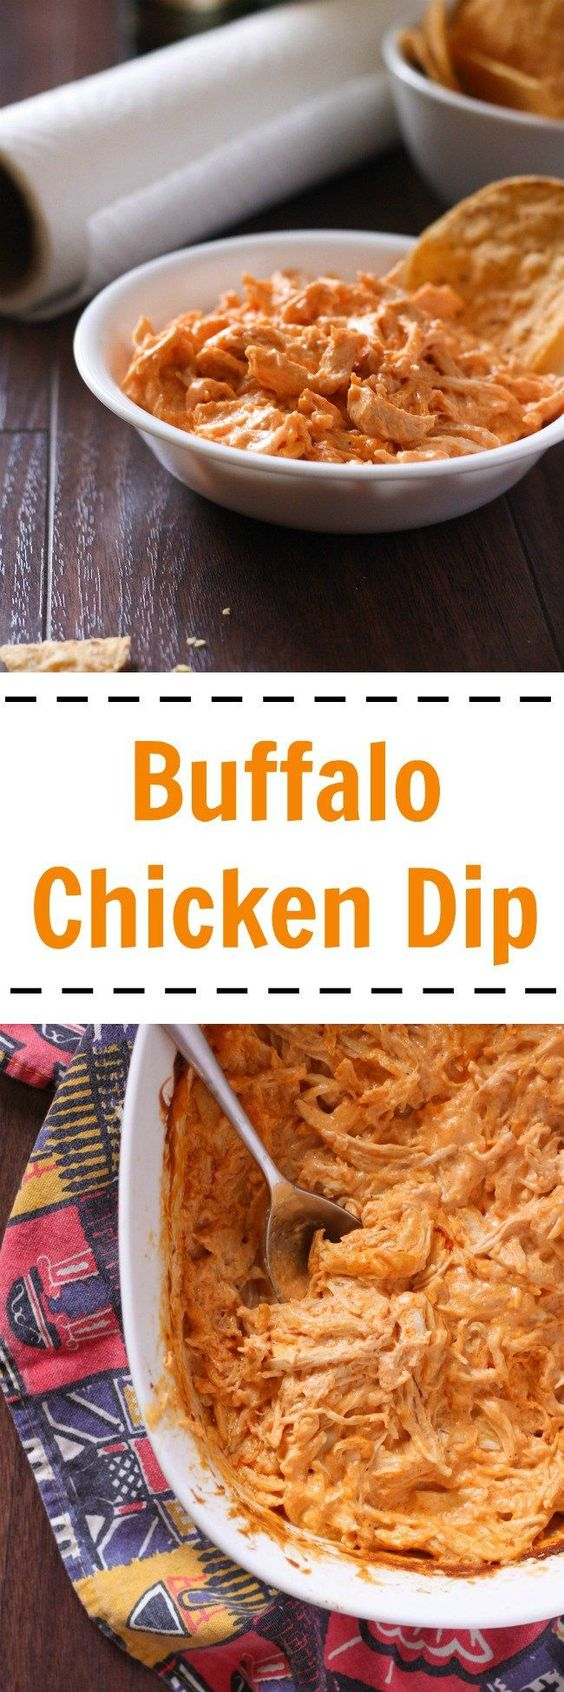 Buffalo chicken dip is spicy, creamy, and full of delicious chicken. It's…: